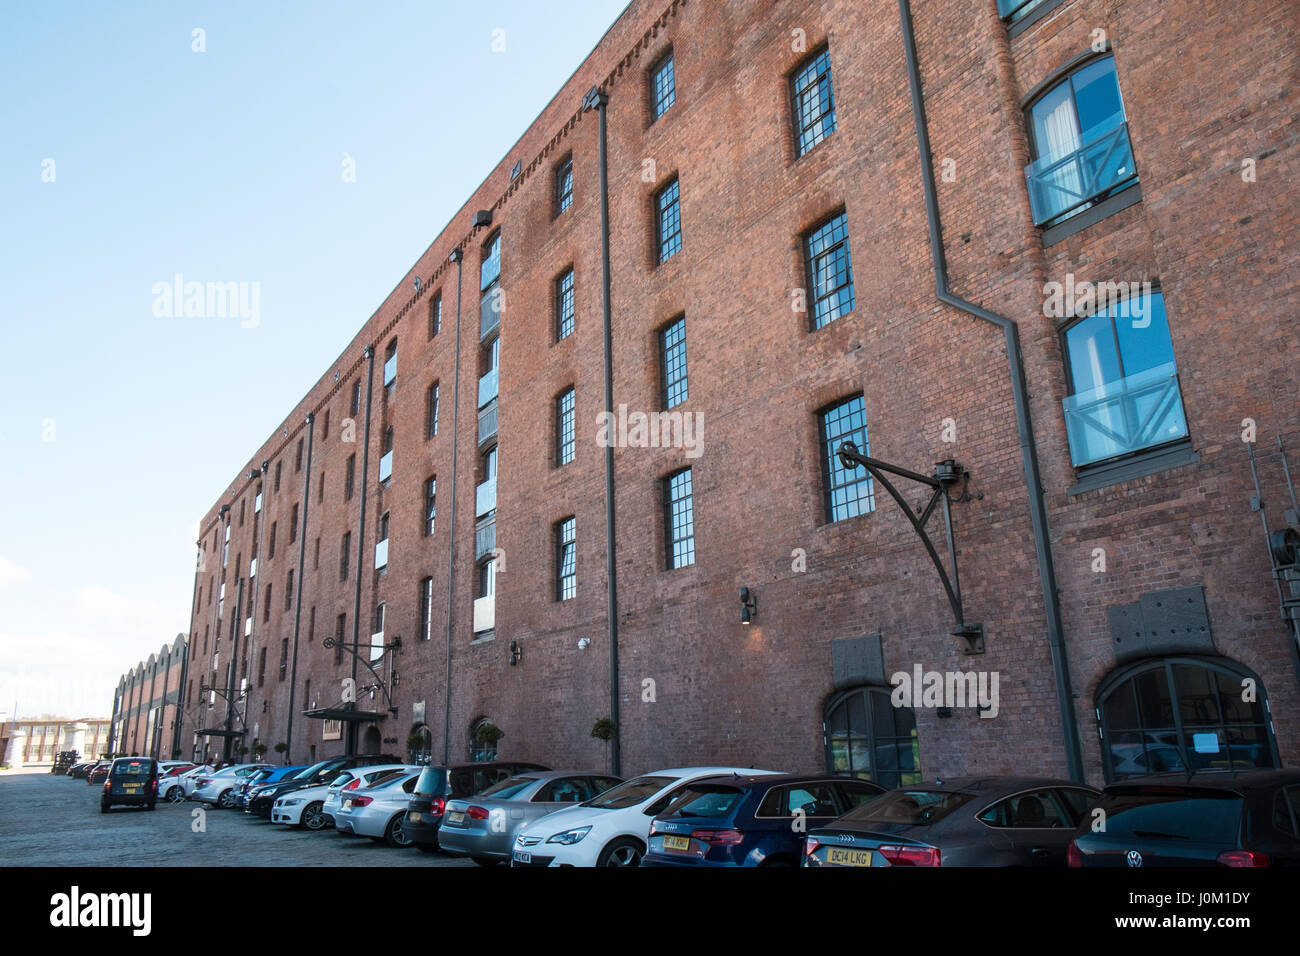 Titanic Hotel,Stanley Dock,Liverpool,Merseyside,England,UNESCO,World Heritage City,City,Northern,North,England,English,UK. Stock Photo